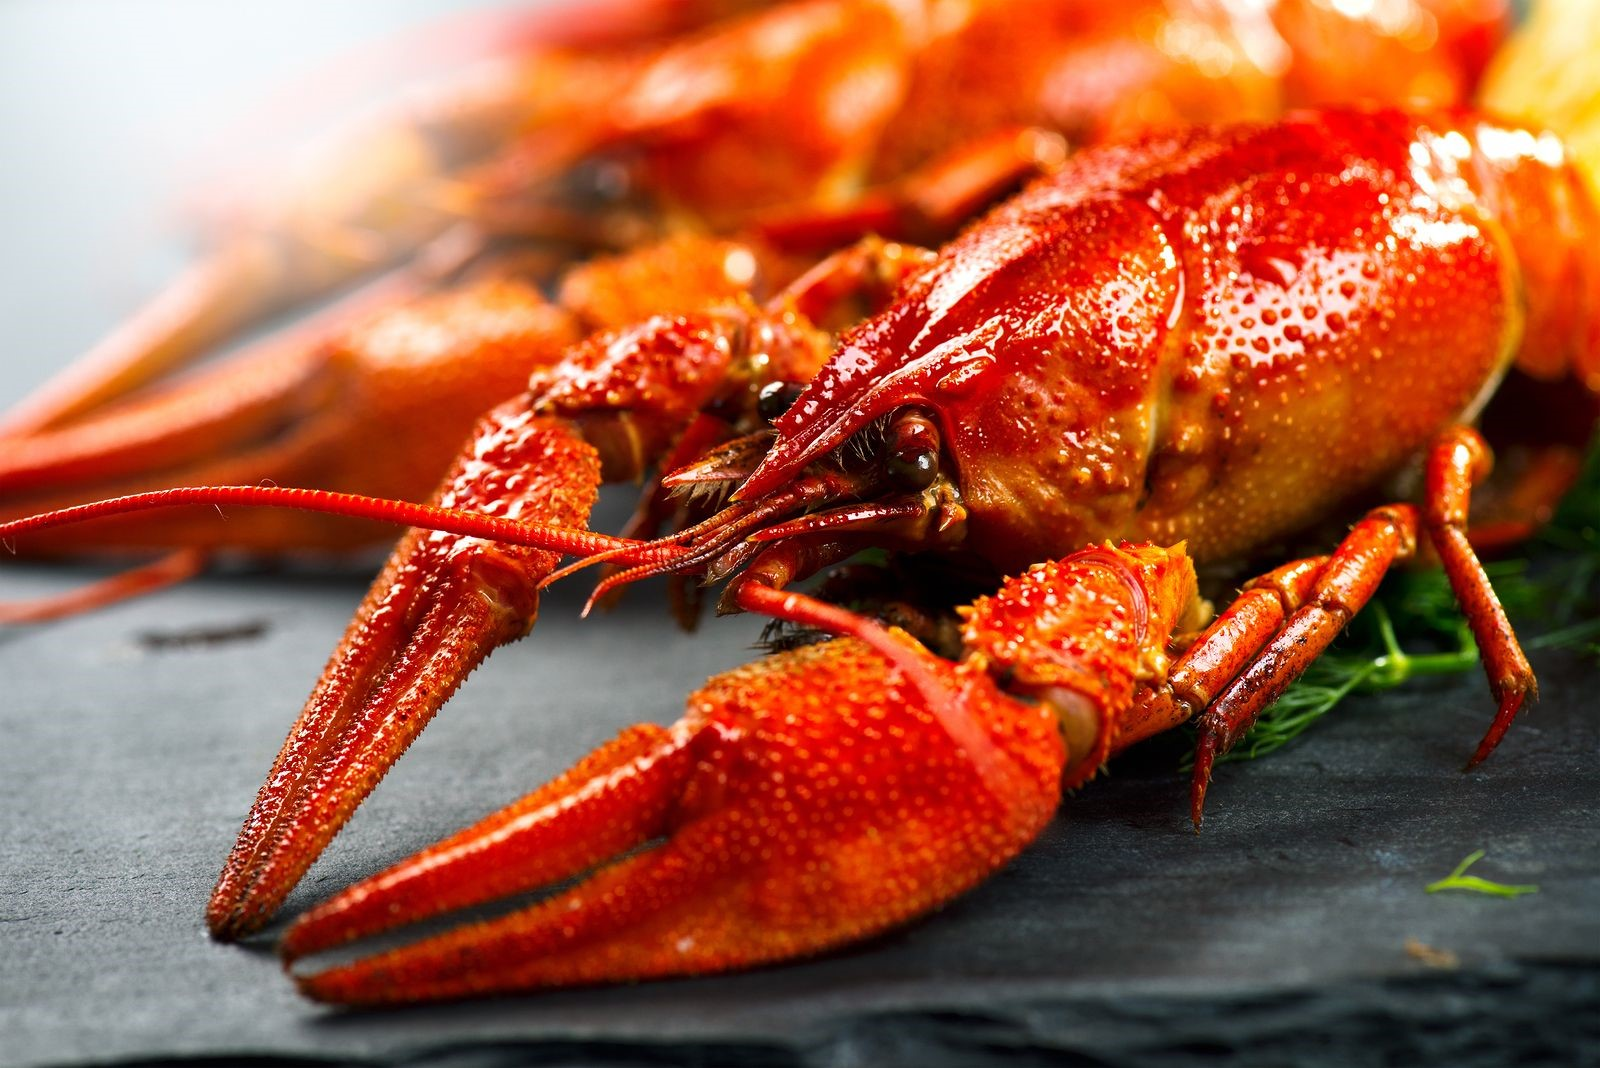 Crawfish Is Truly a Popular and Well-Loved Seafood in Houston, Texas